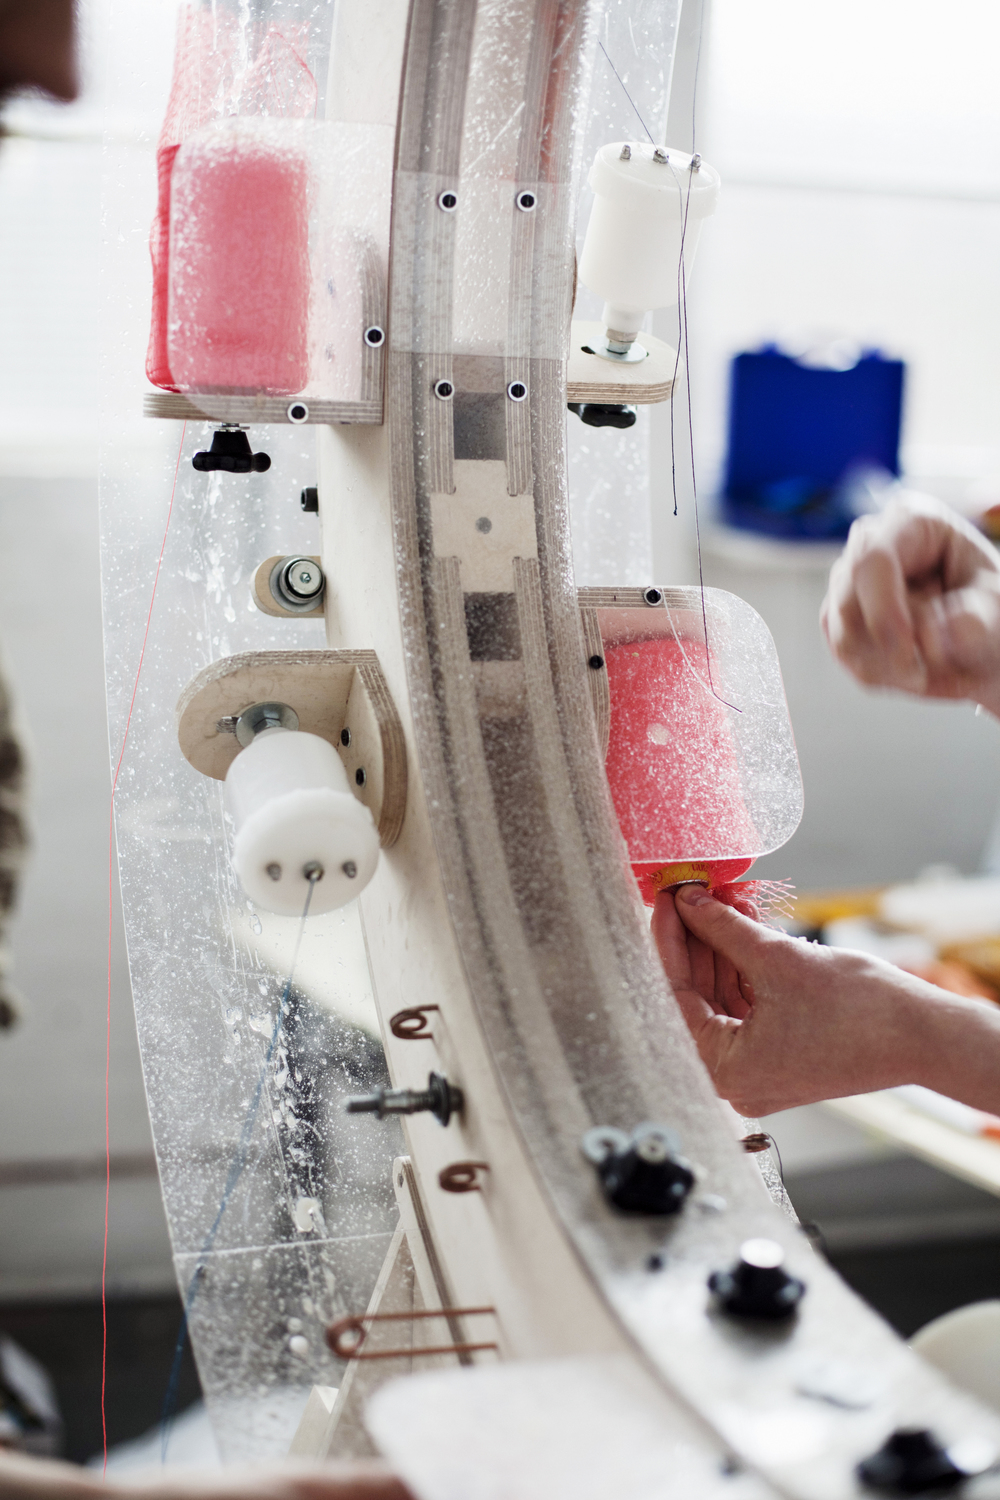 The Thread Wrapping Machine, Anton Alvarez, photo Märta Thisner